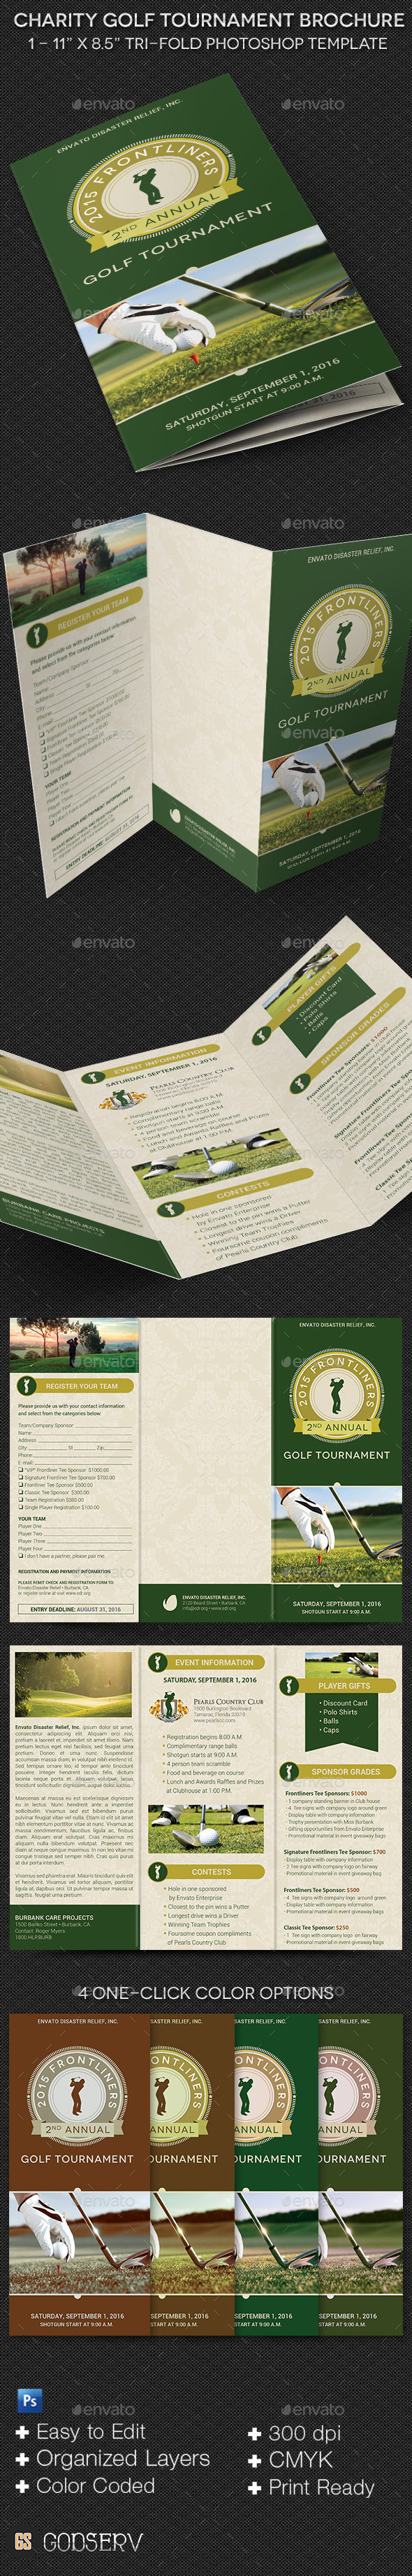 Charity Golf Tournament Brochure Template - Informational Brochures